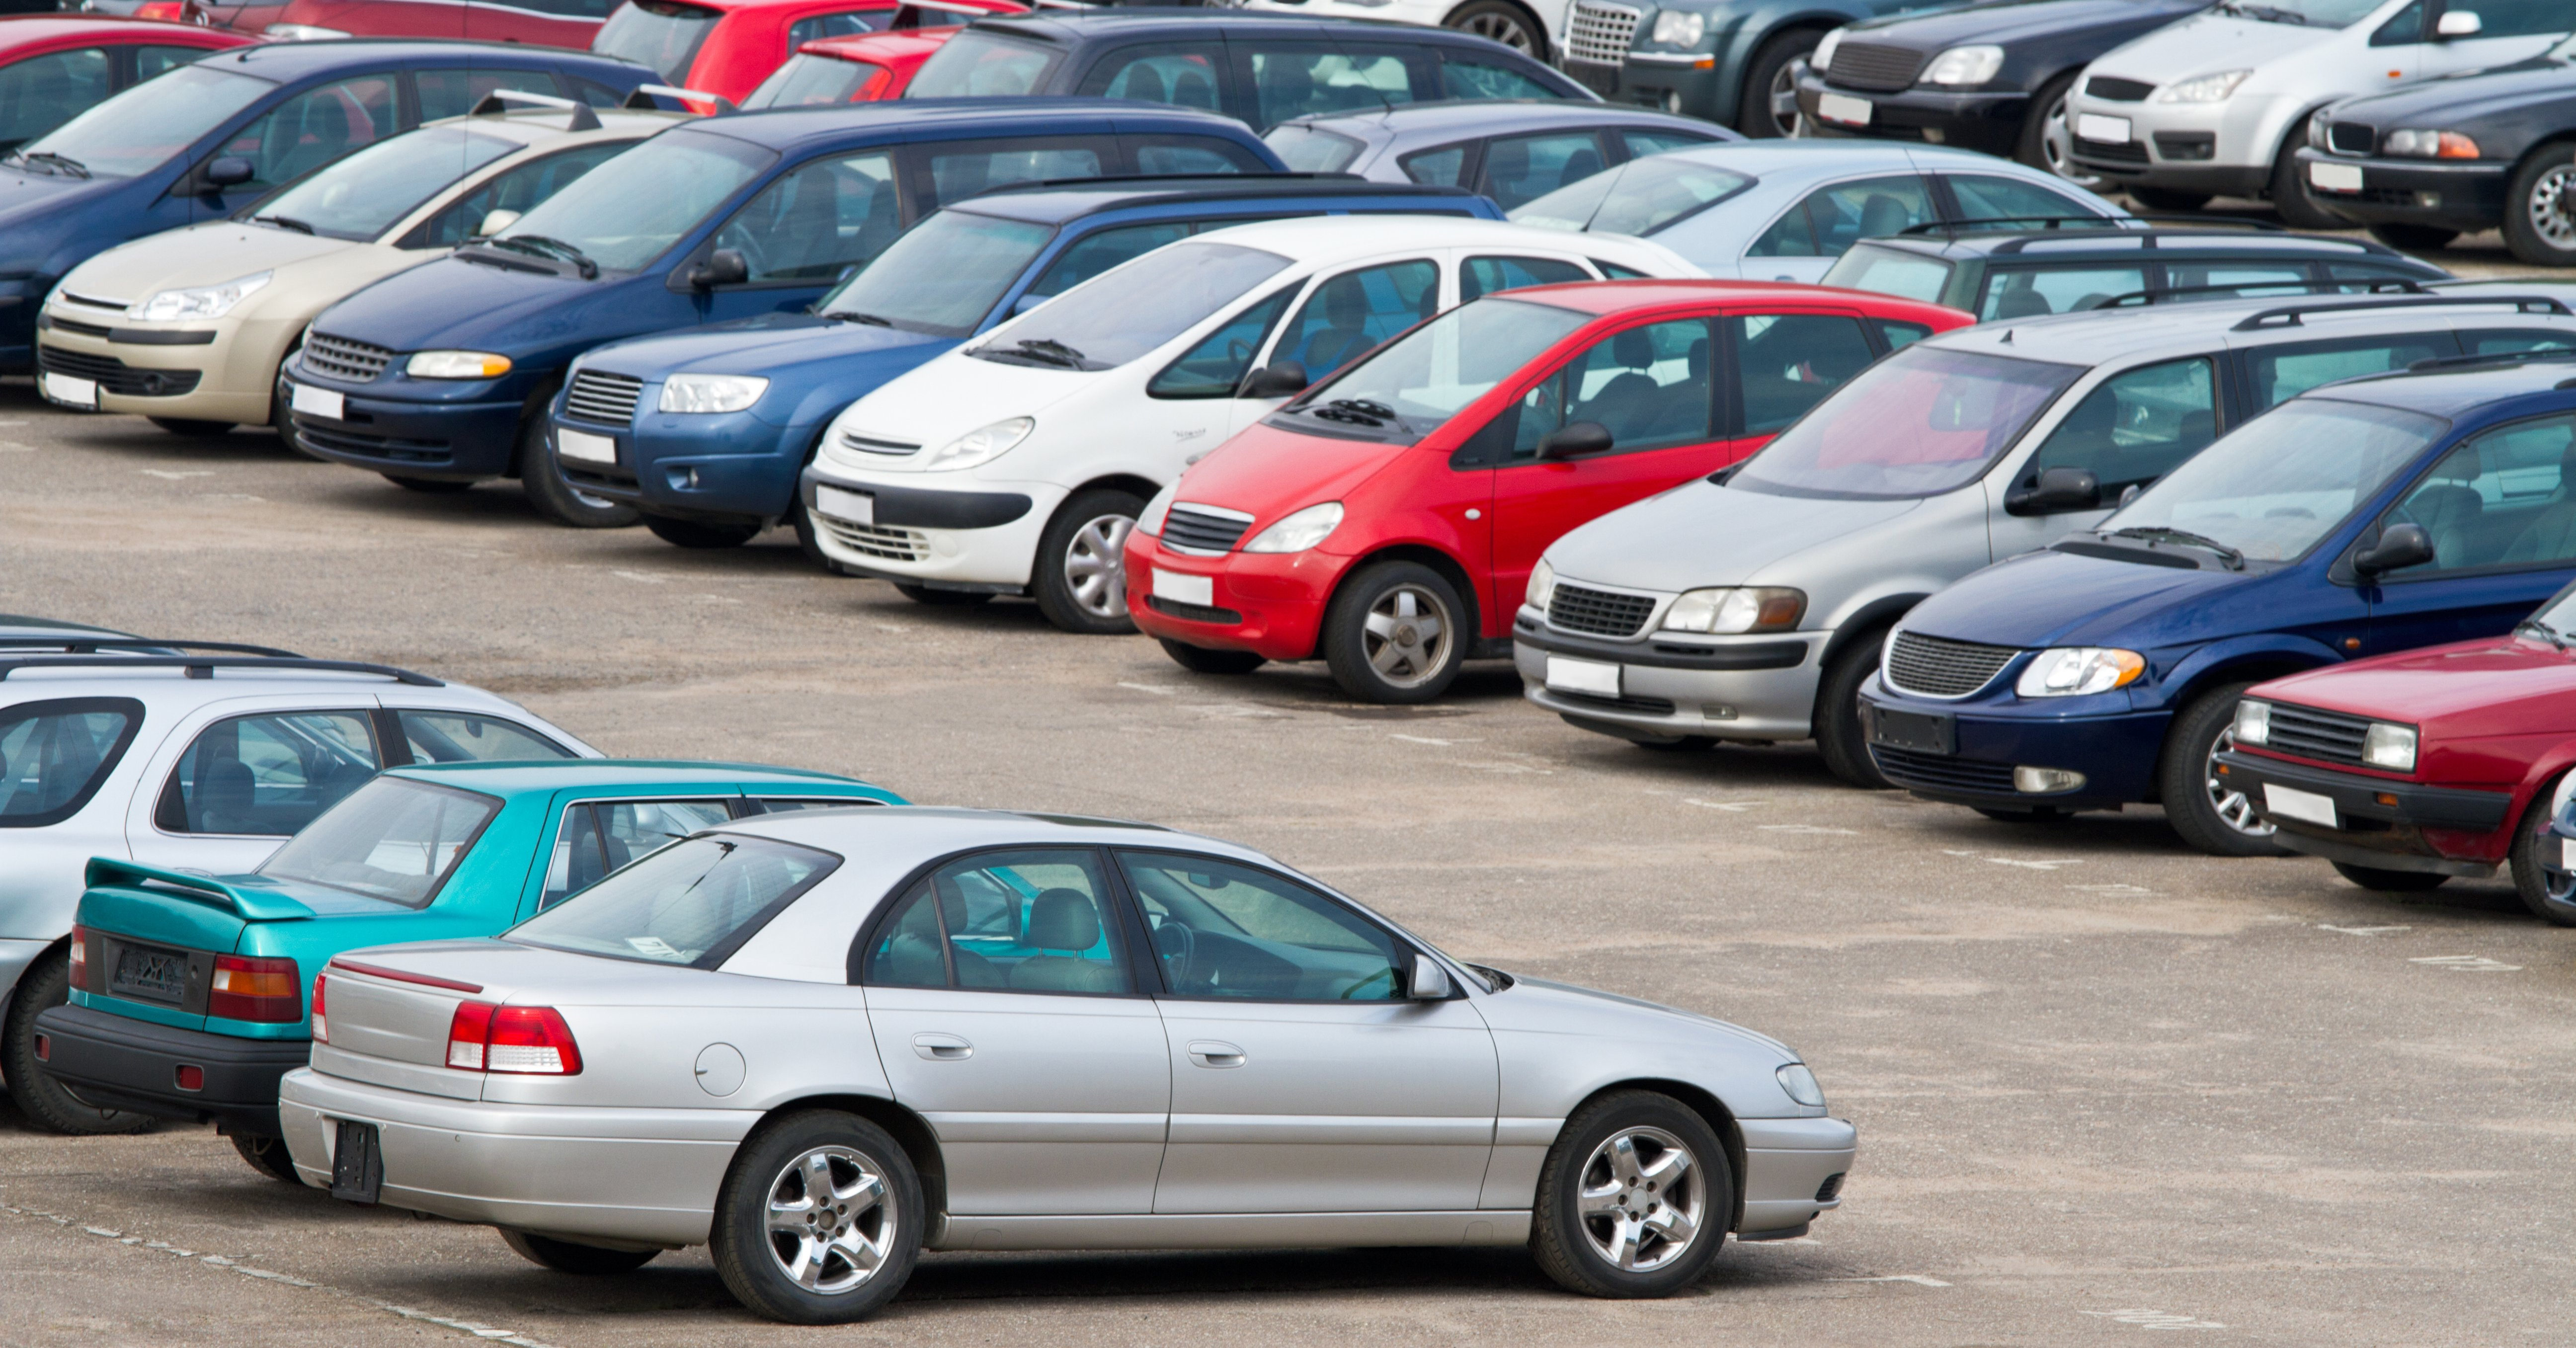 Buy Used Cars Hyannis Used Cars For Sale Hyannis Used